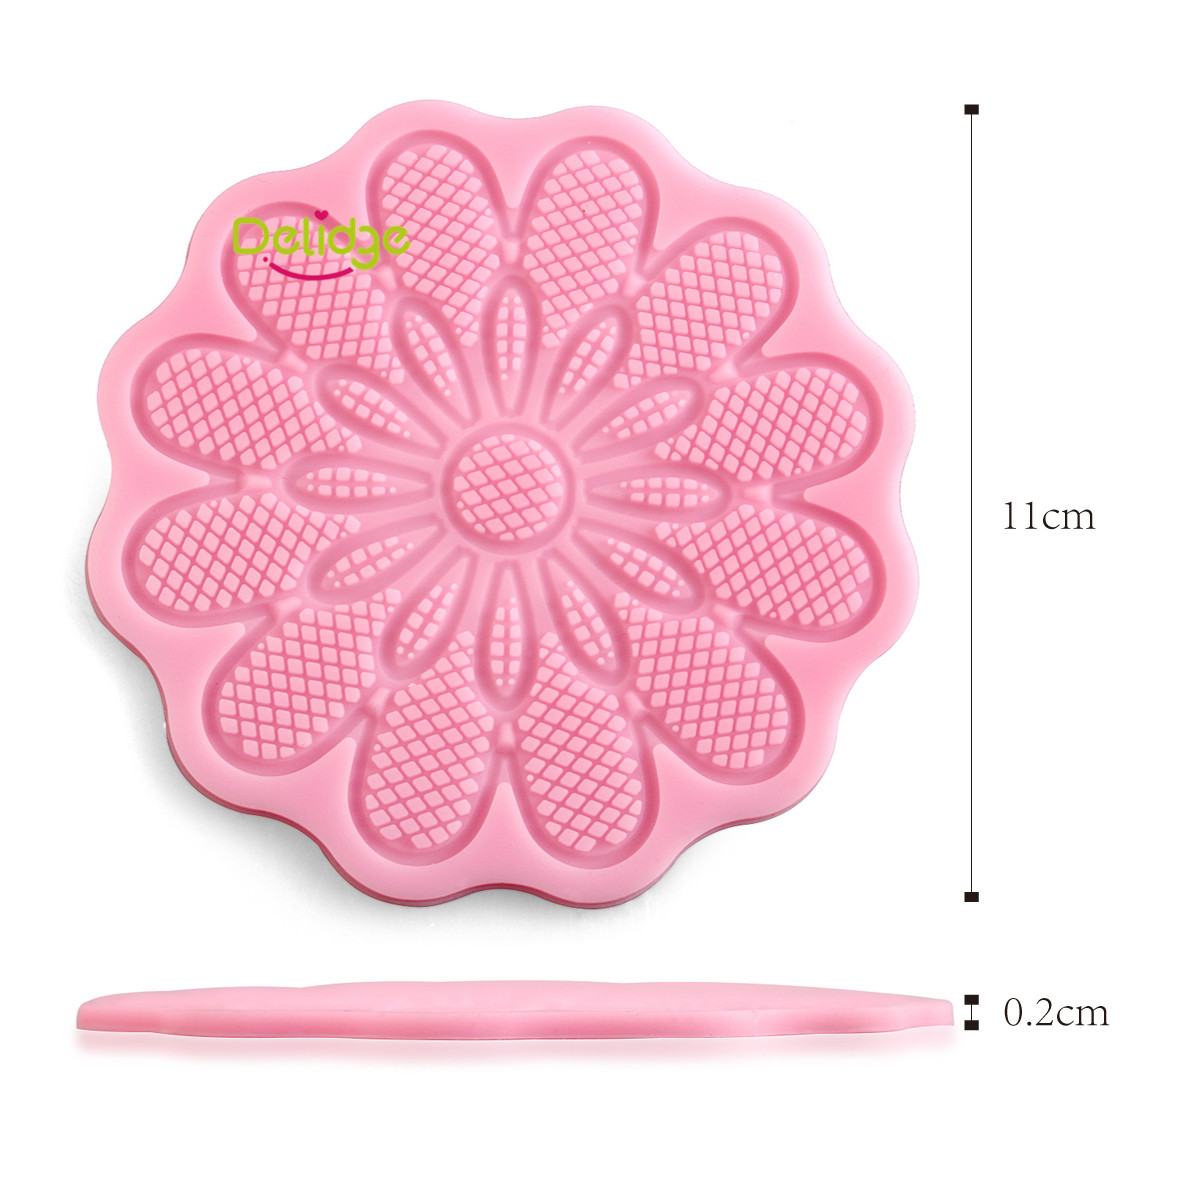 Diy Lace Silicone Mold Mould Sugar Craft Fondant Mat Cake